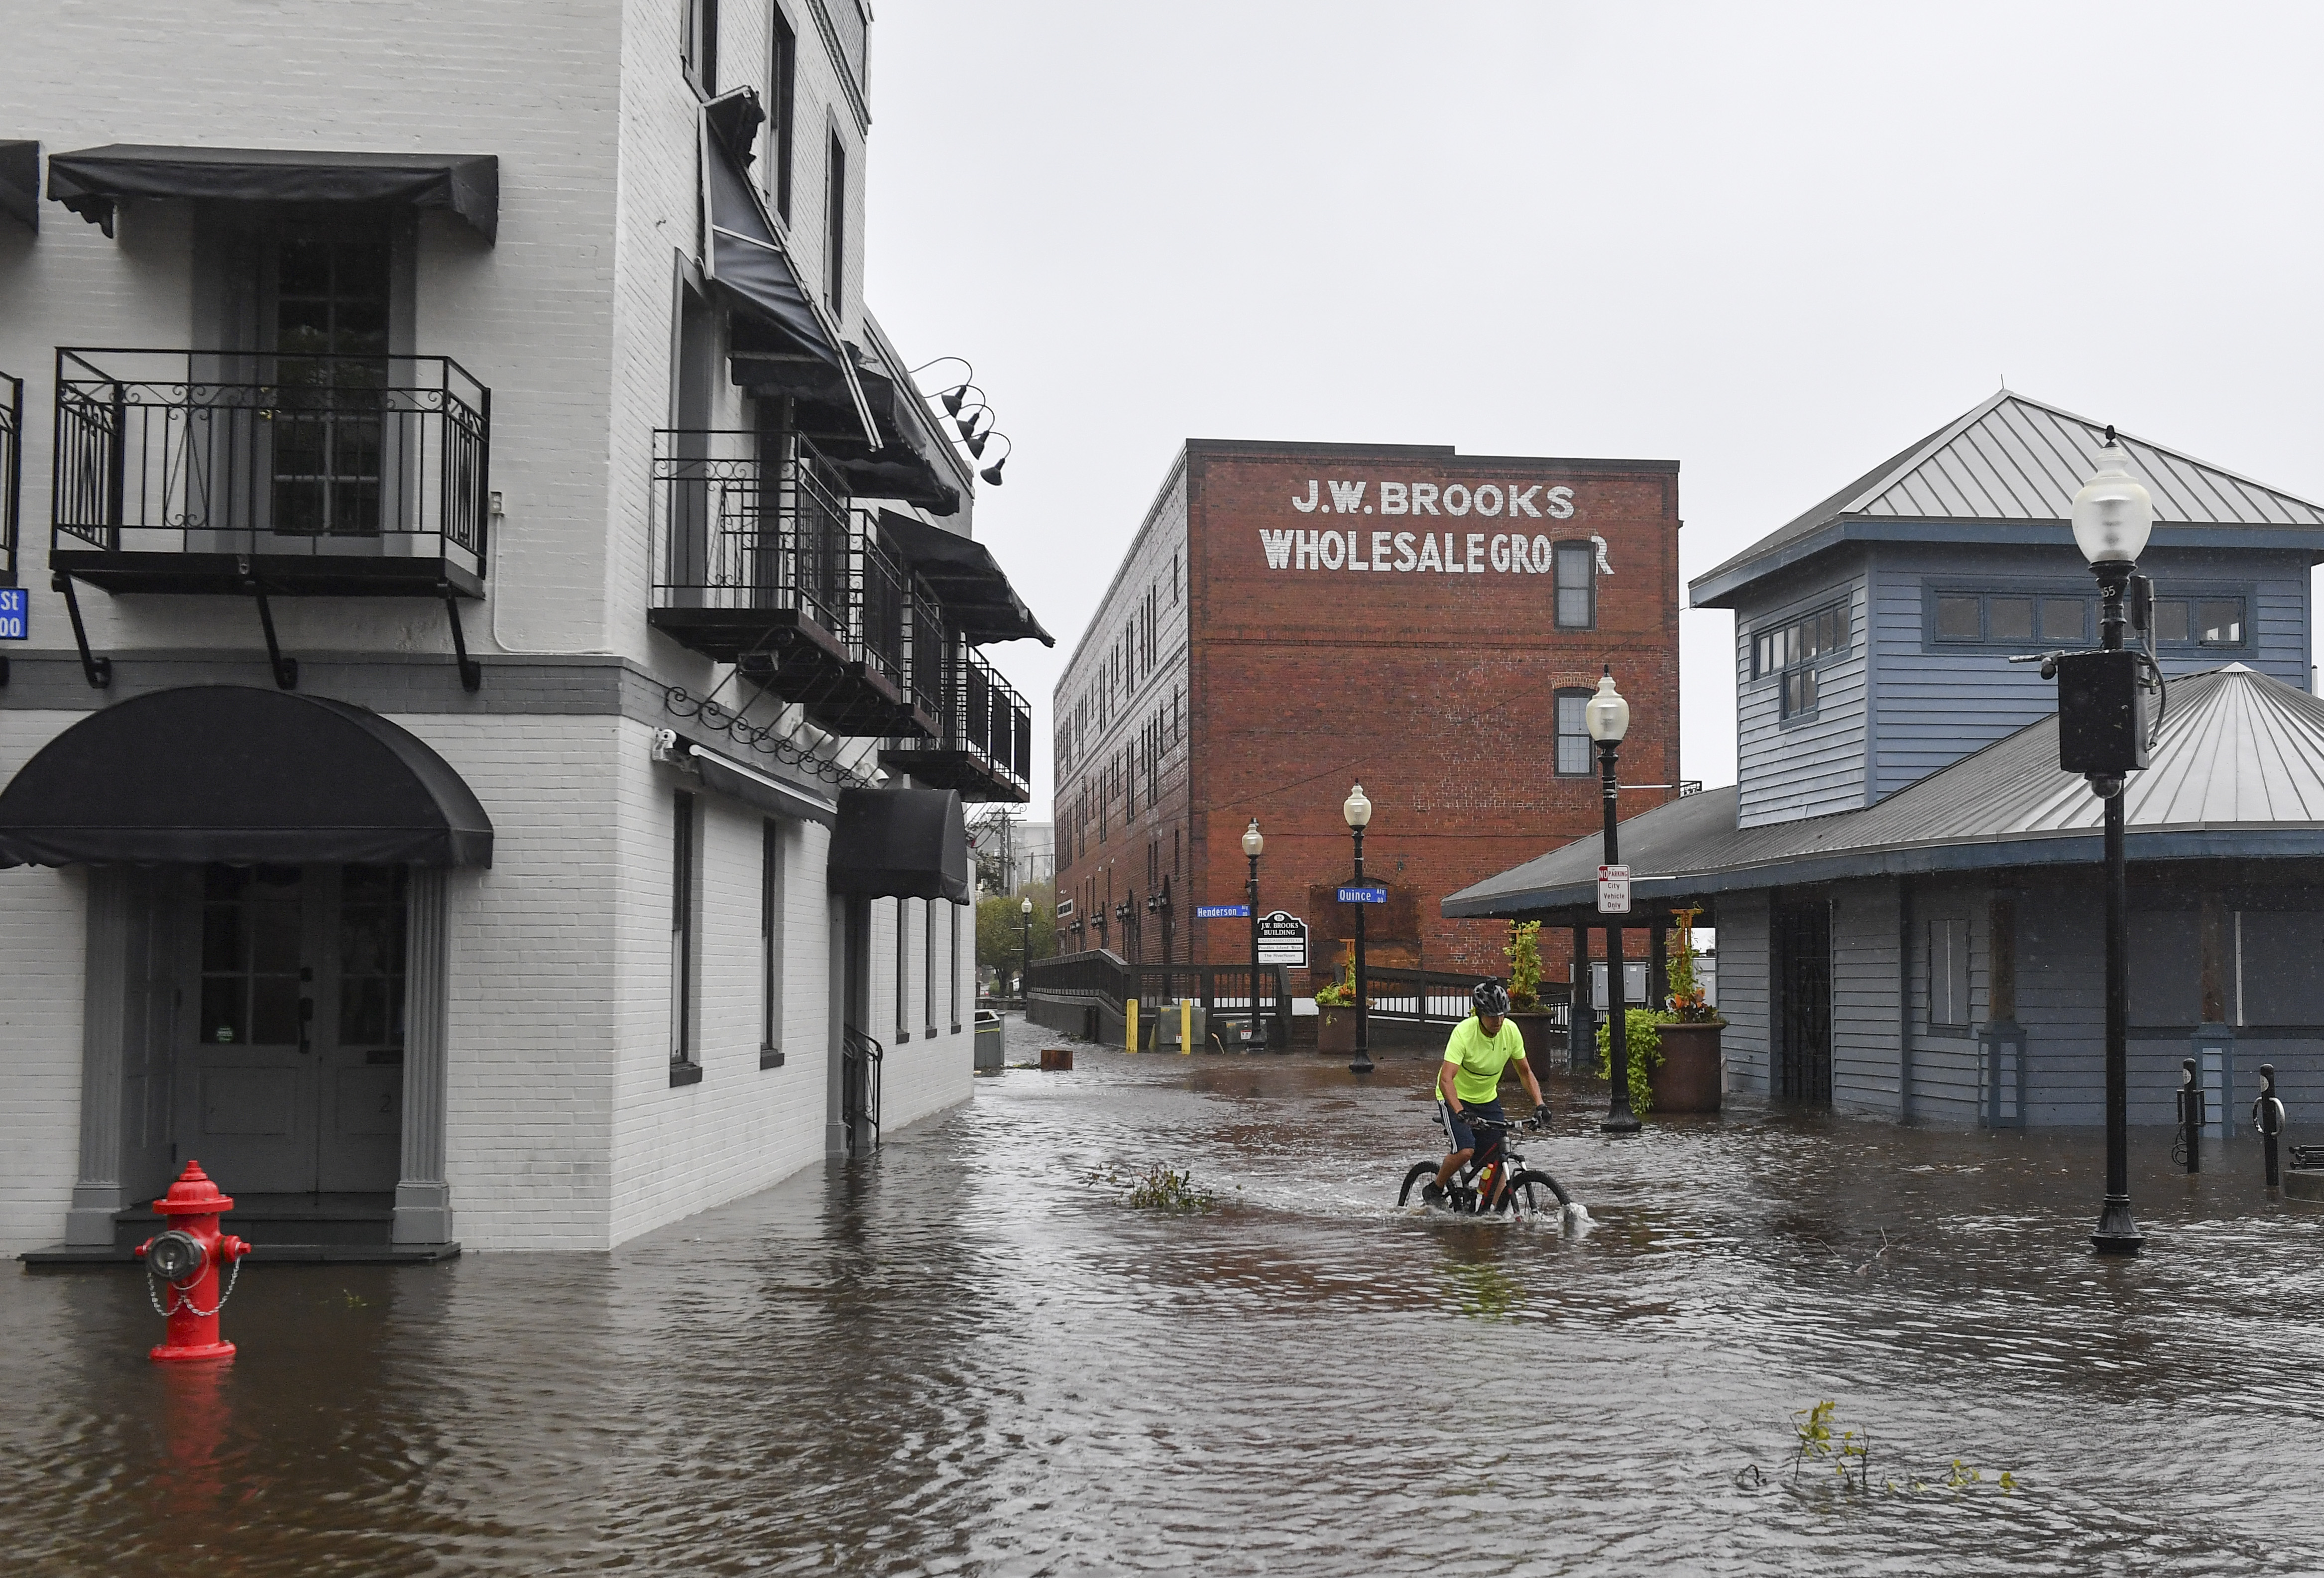 Florence: After hurricane, North Carolina grapples with floods